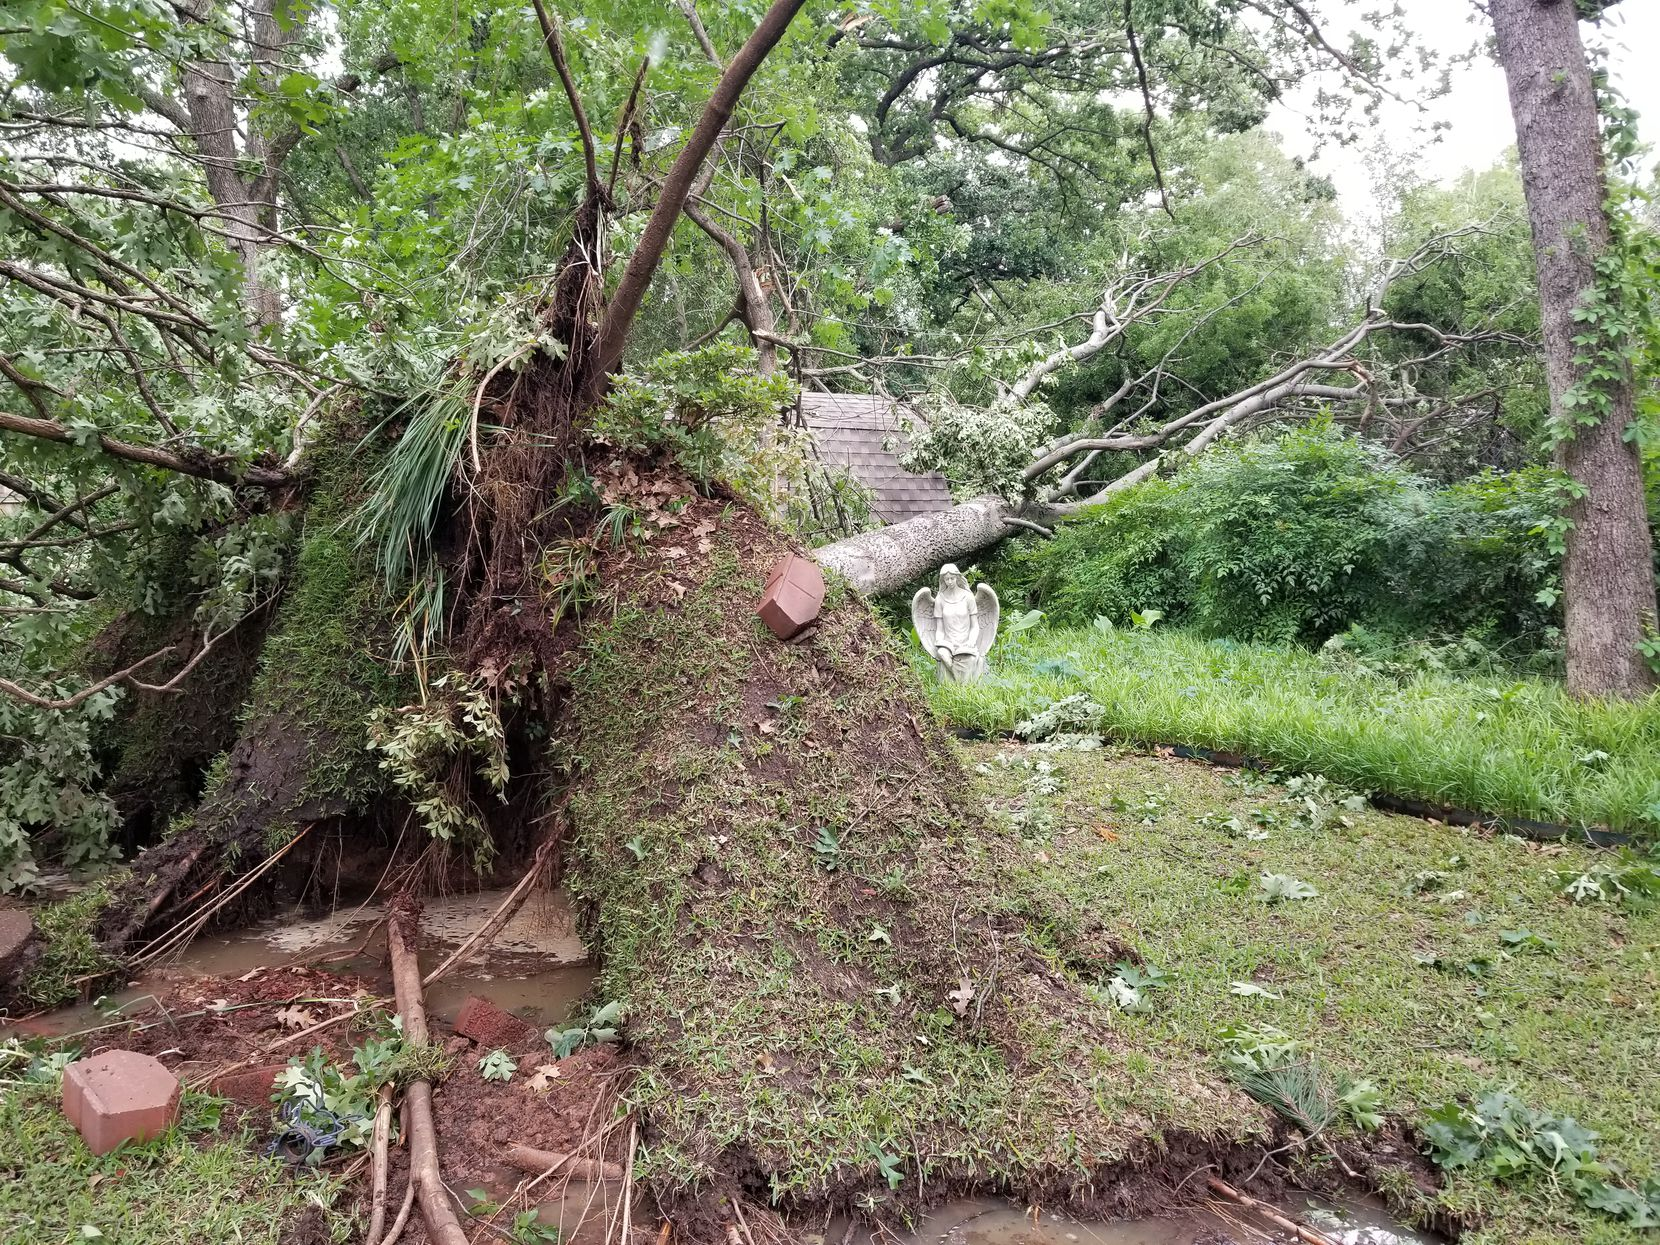 Jane Welborn said seven trees fell on her property during a tornado in Denton Tuesday evening, including one that was ripped out along with a large network of roots.